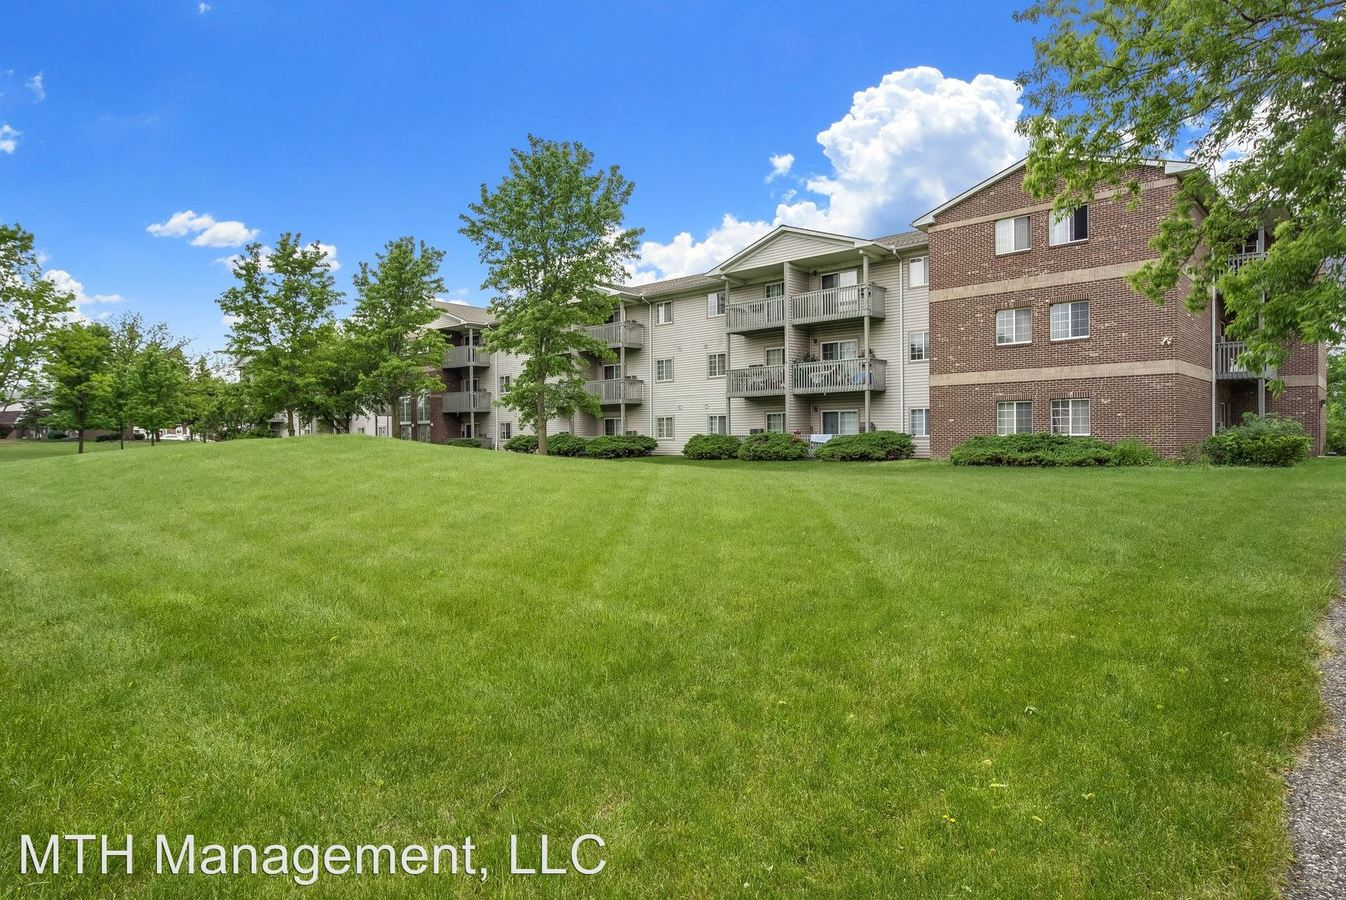 2 Bedrooms 1 Bathroom Apartment for rent at Twin Oaks Meadows in Lansing, MI